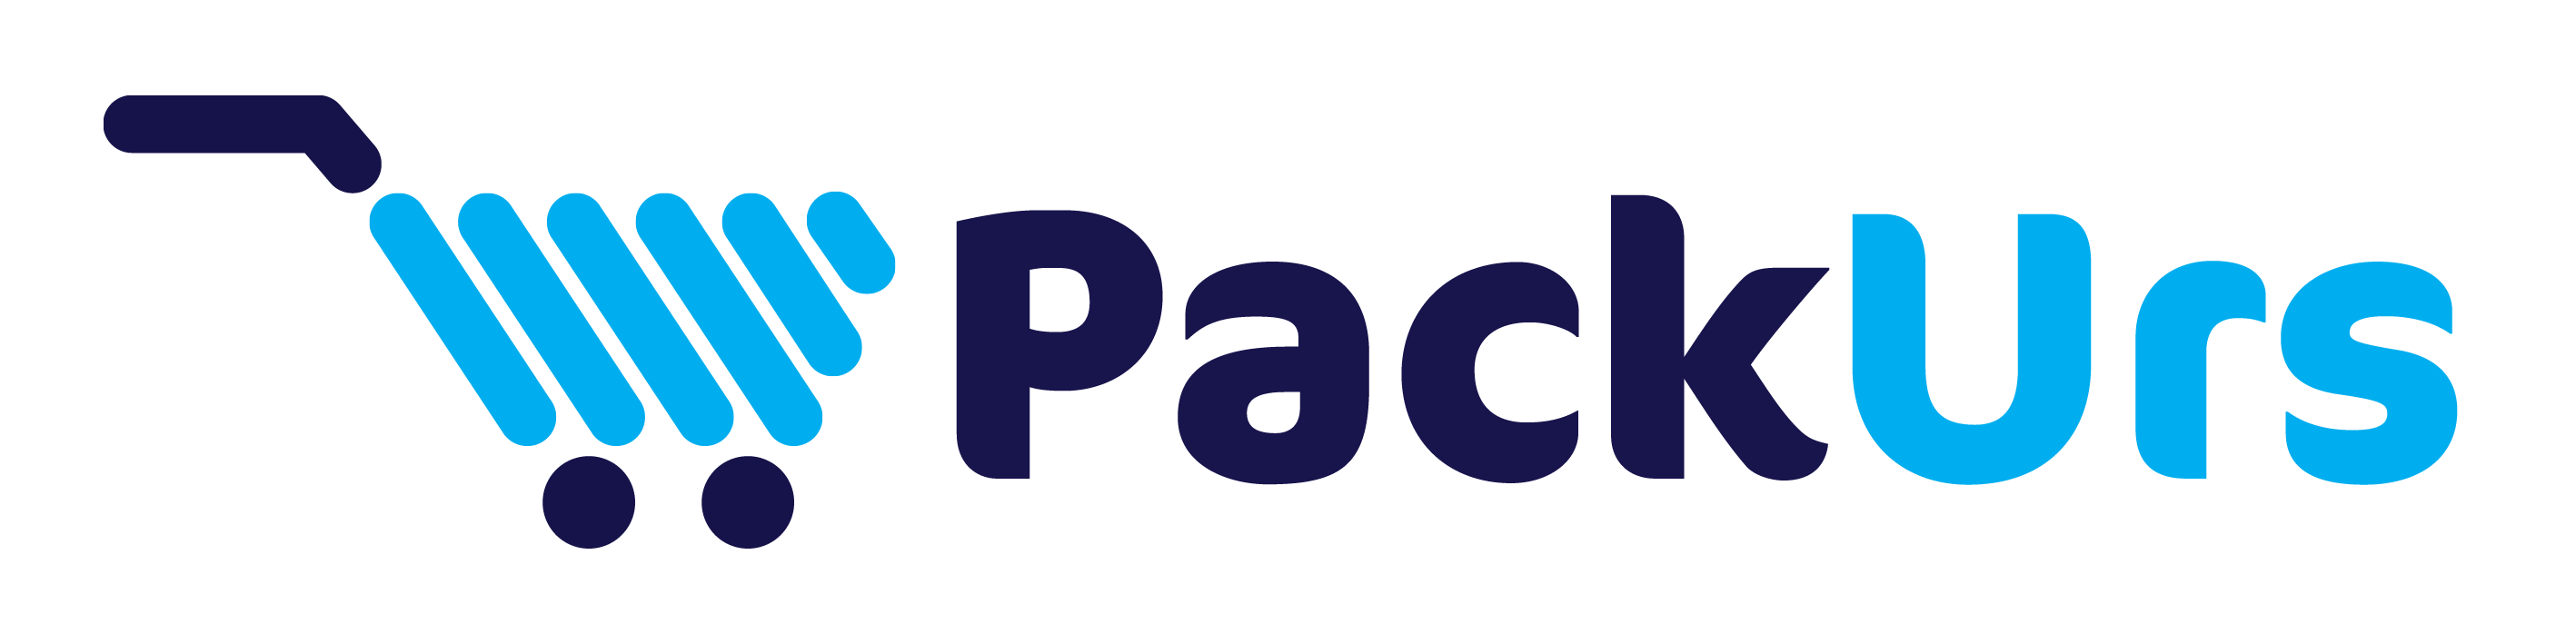 Packurs